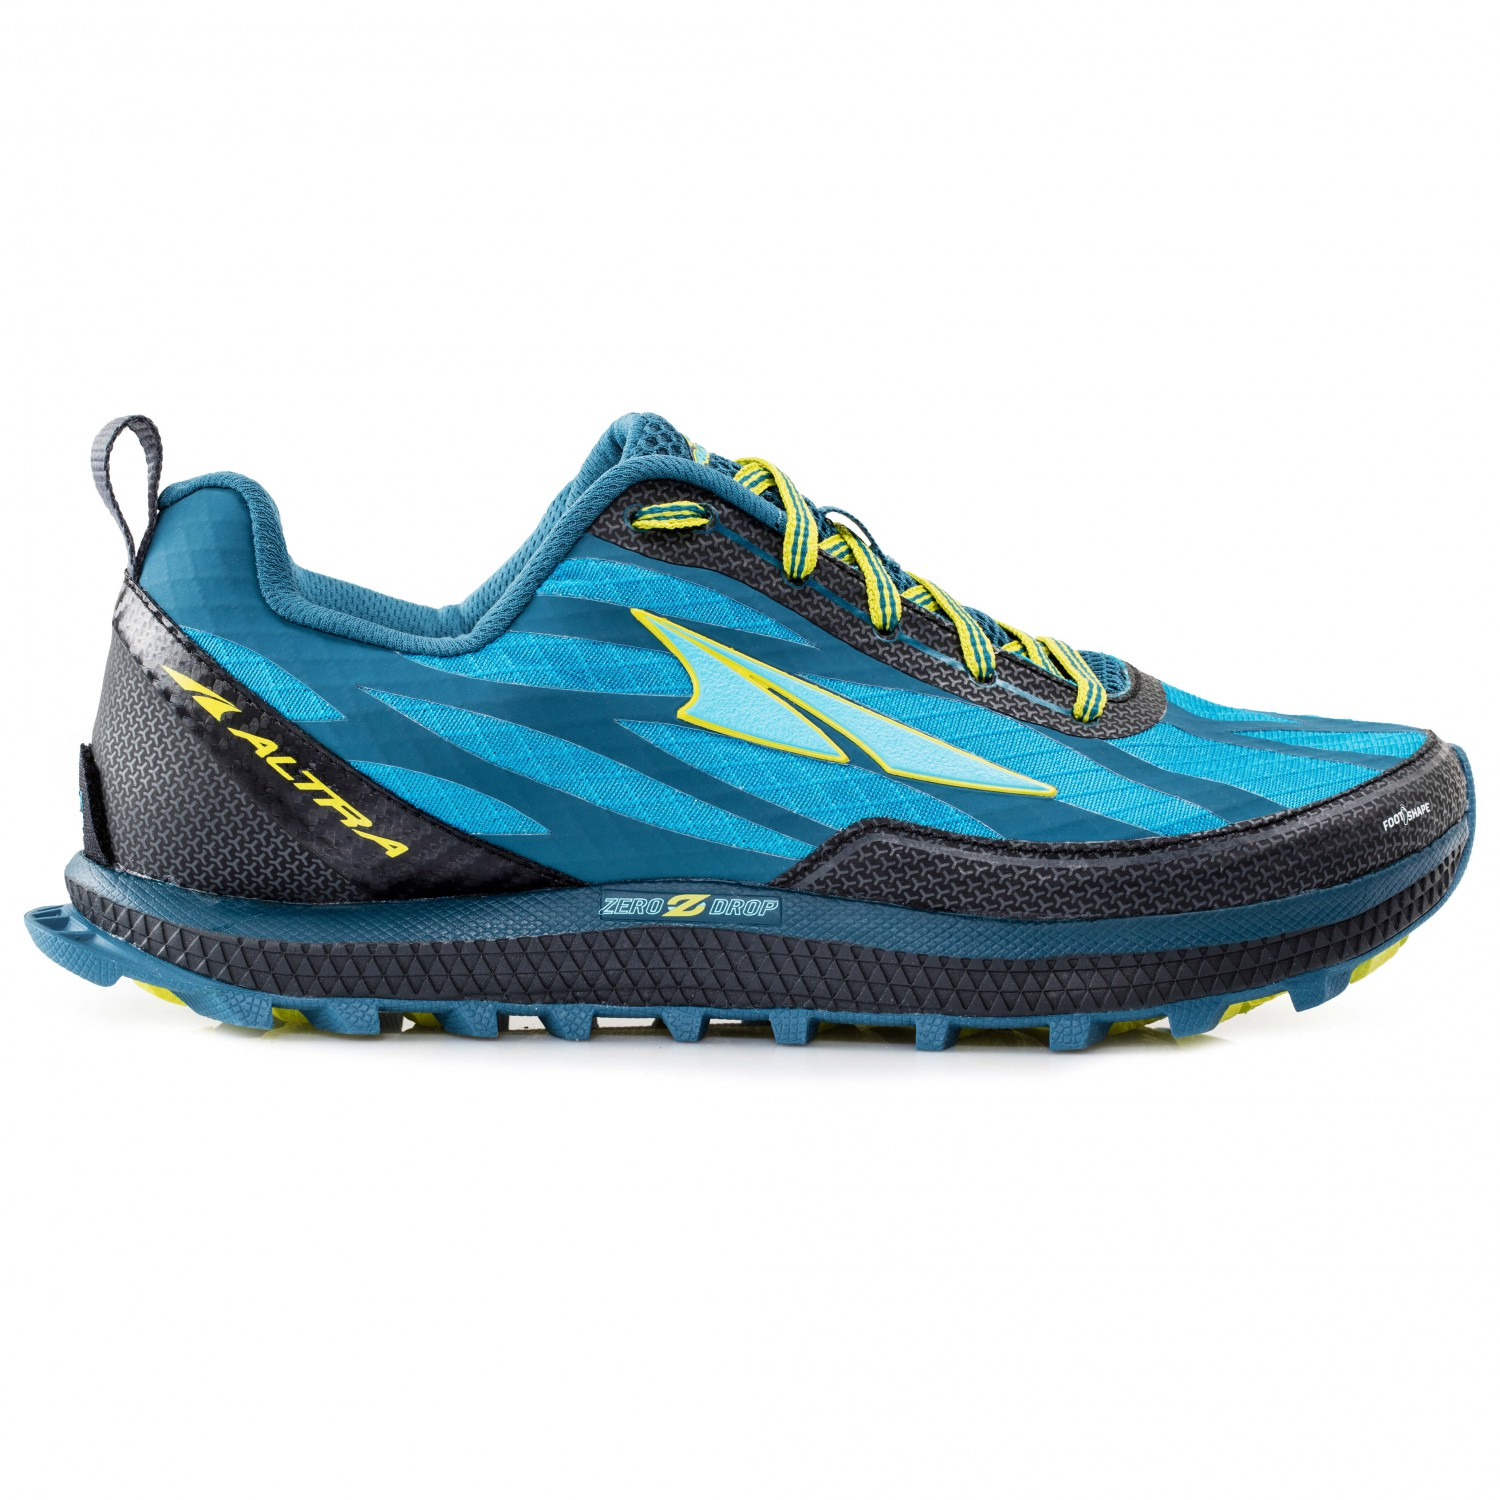 how to buy trail shoes online